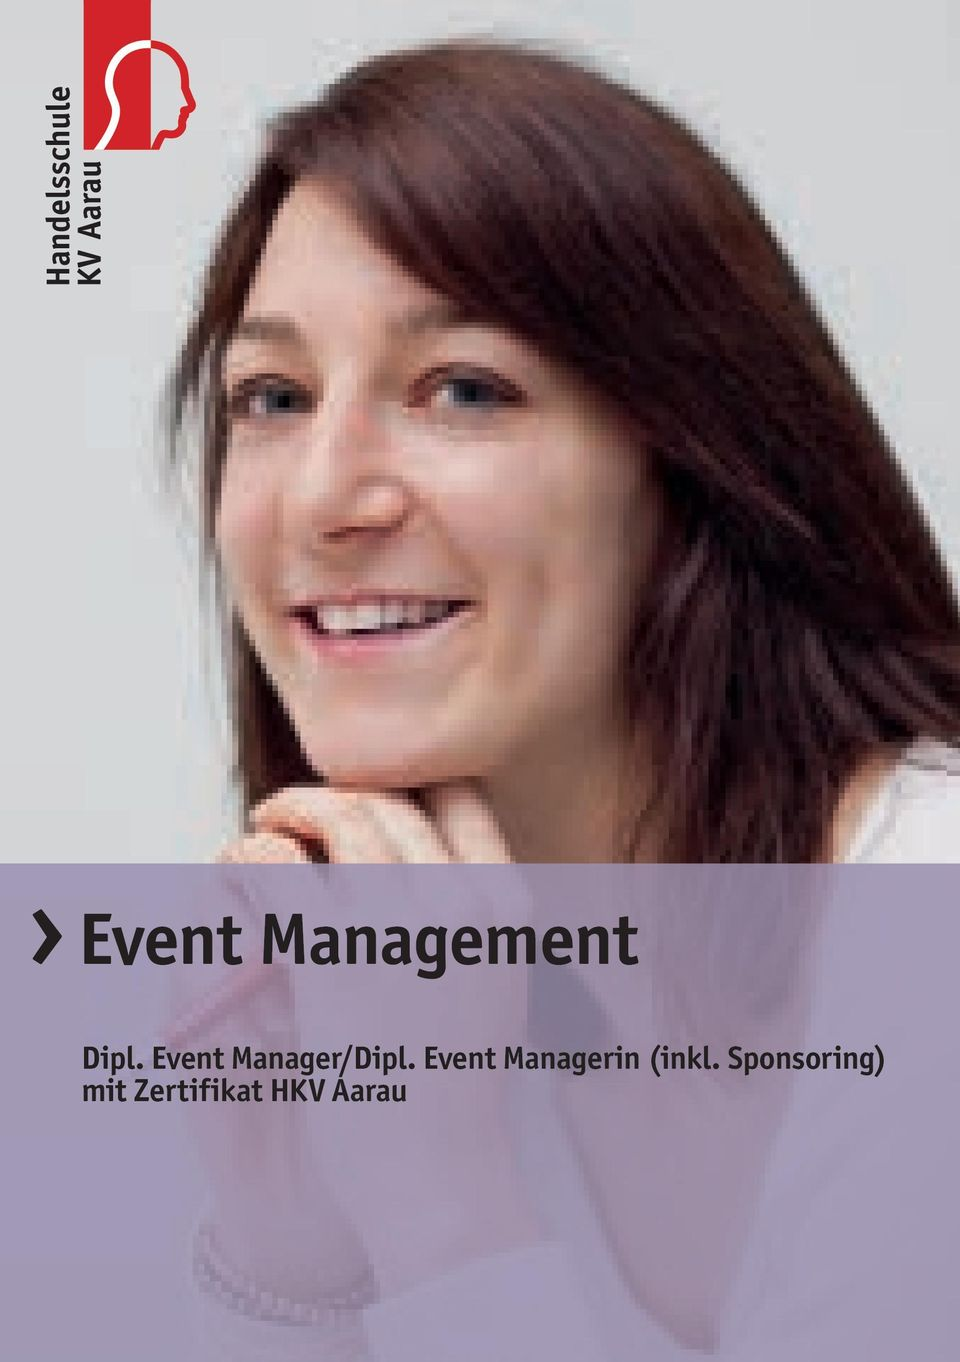 Event Managerin (inkl.